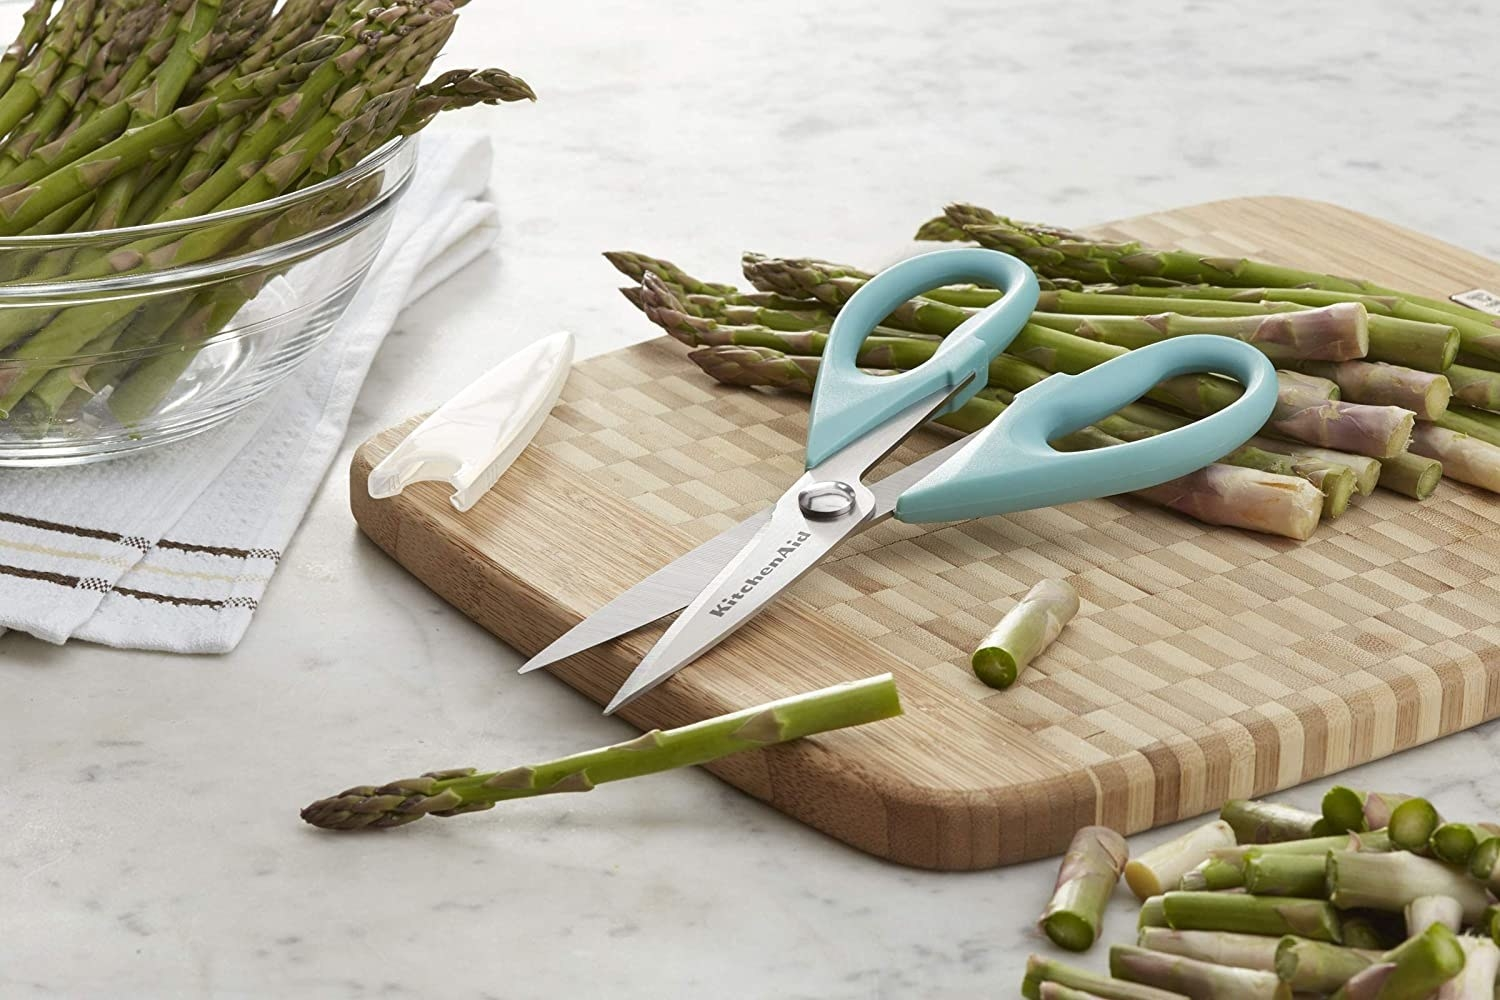 The kitchen shears next to some freshly chopped asparagus